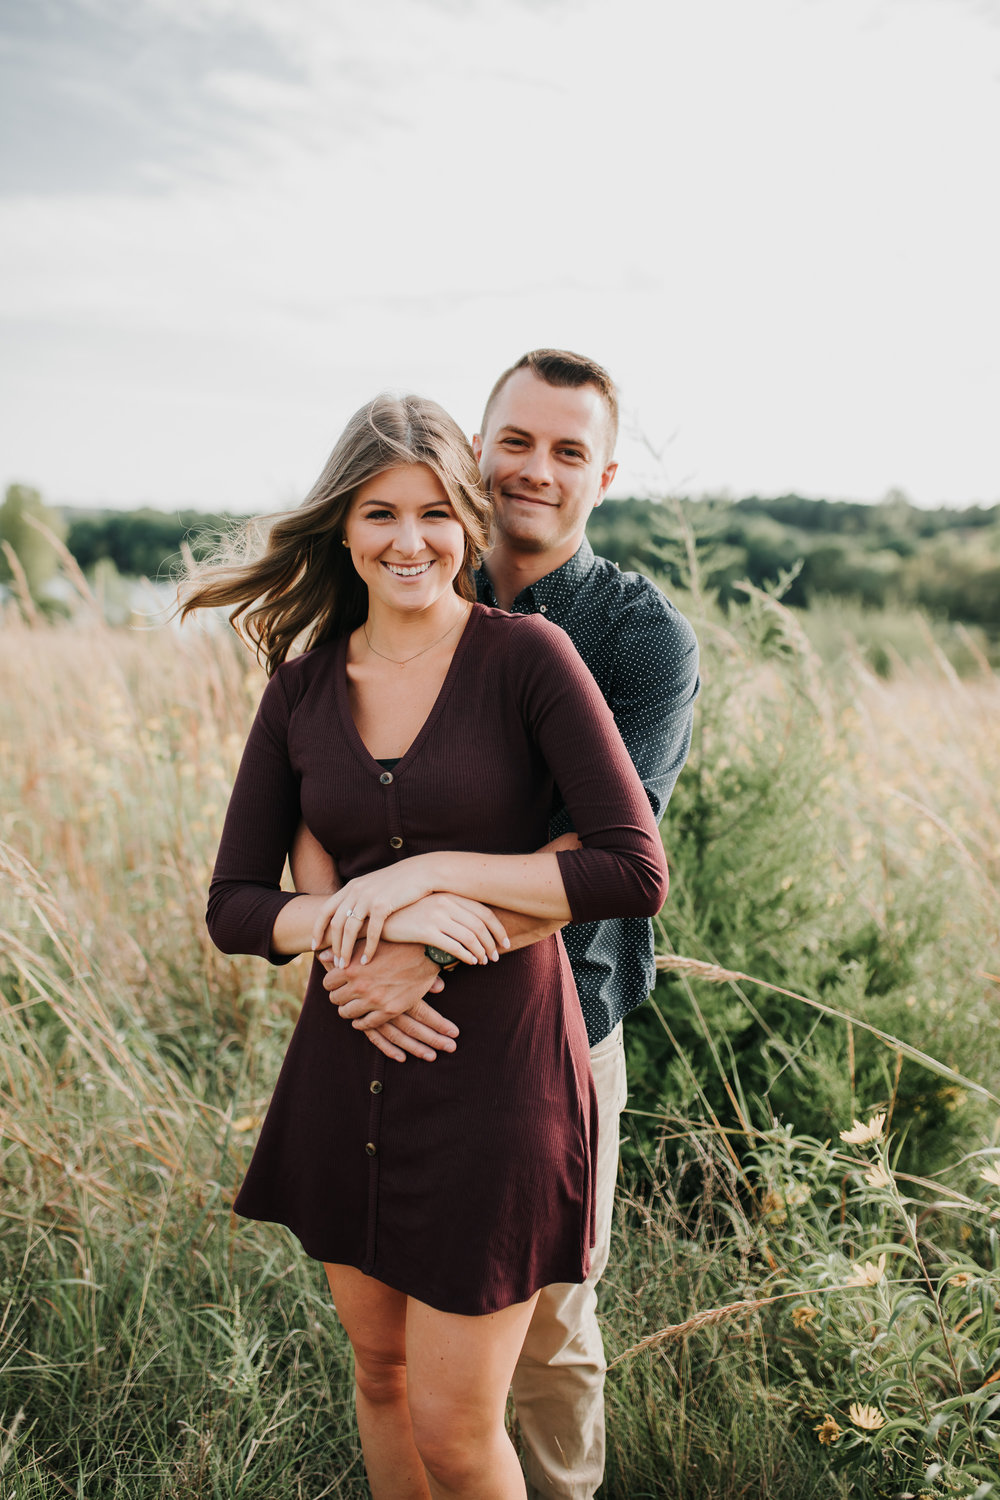 Paige & Nick - Engaged - Nathaniel Jensen Photography - Omaha Nebraska Wedding Photograper - Omaha Nebraska Engagement Session - Chalco Hills Engagement Session-2.jpg